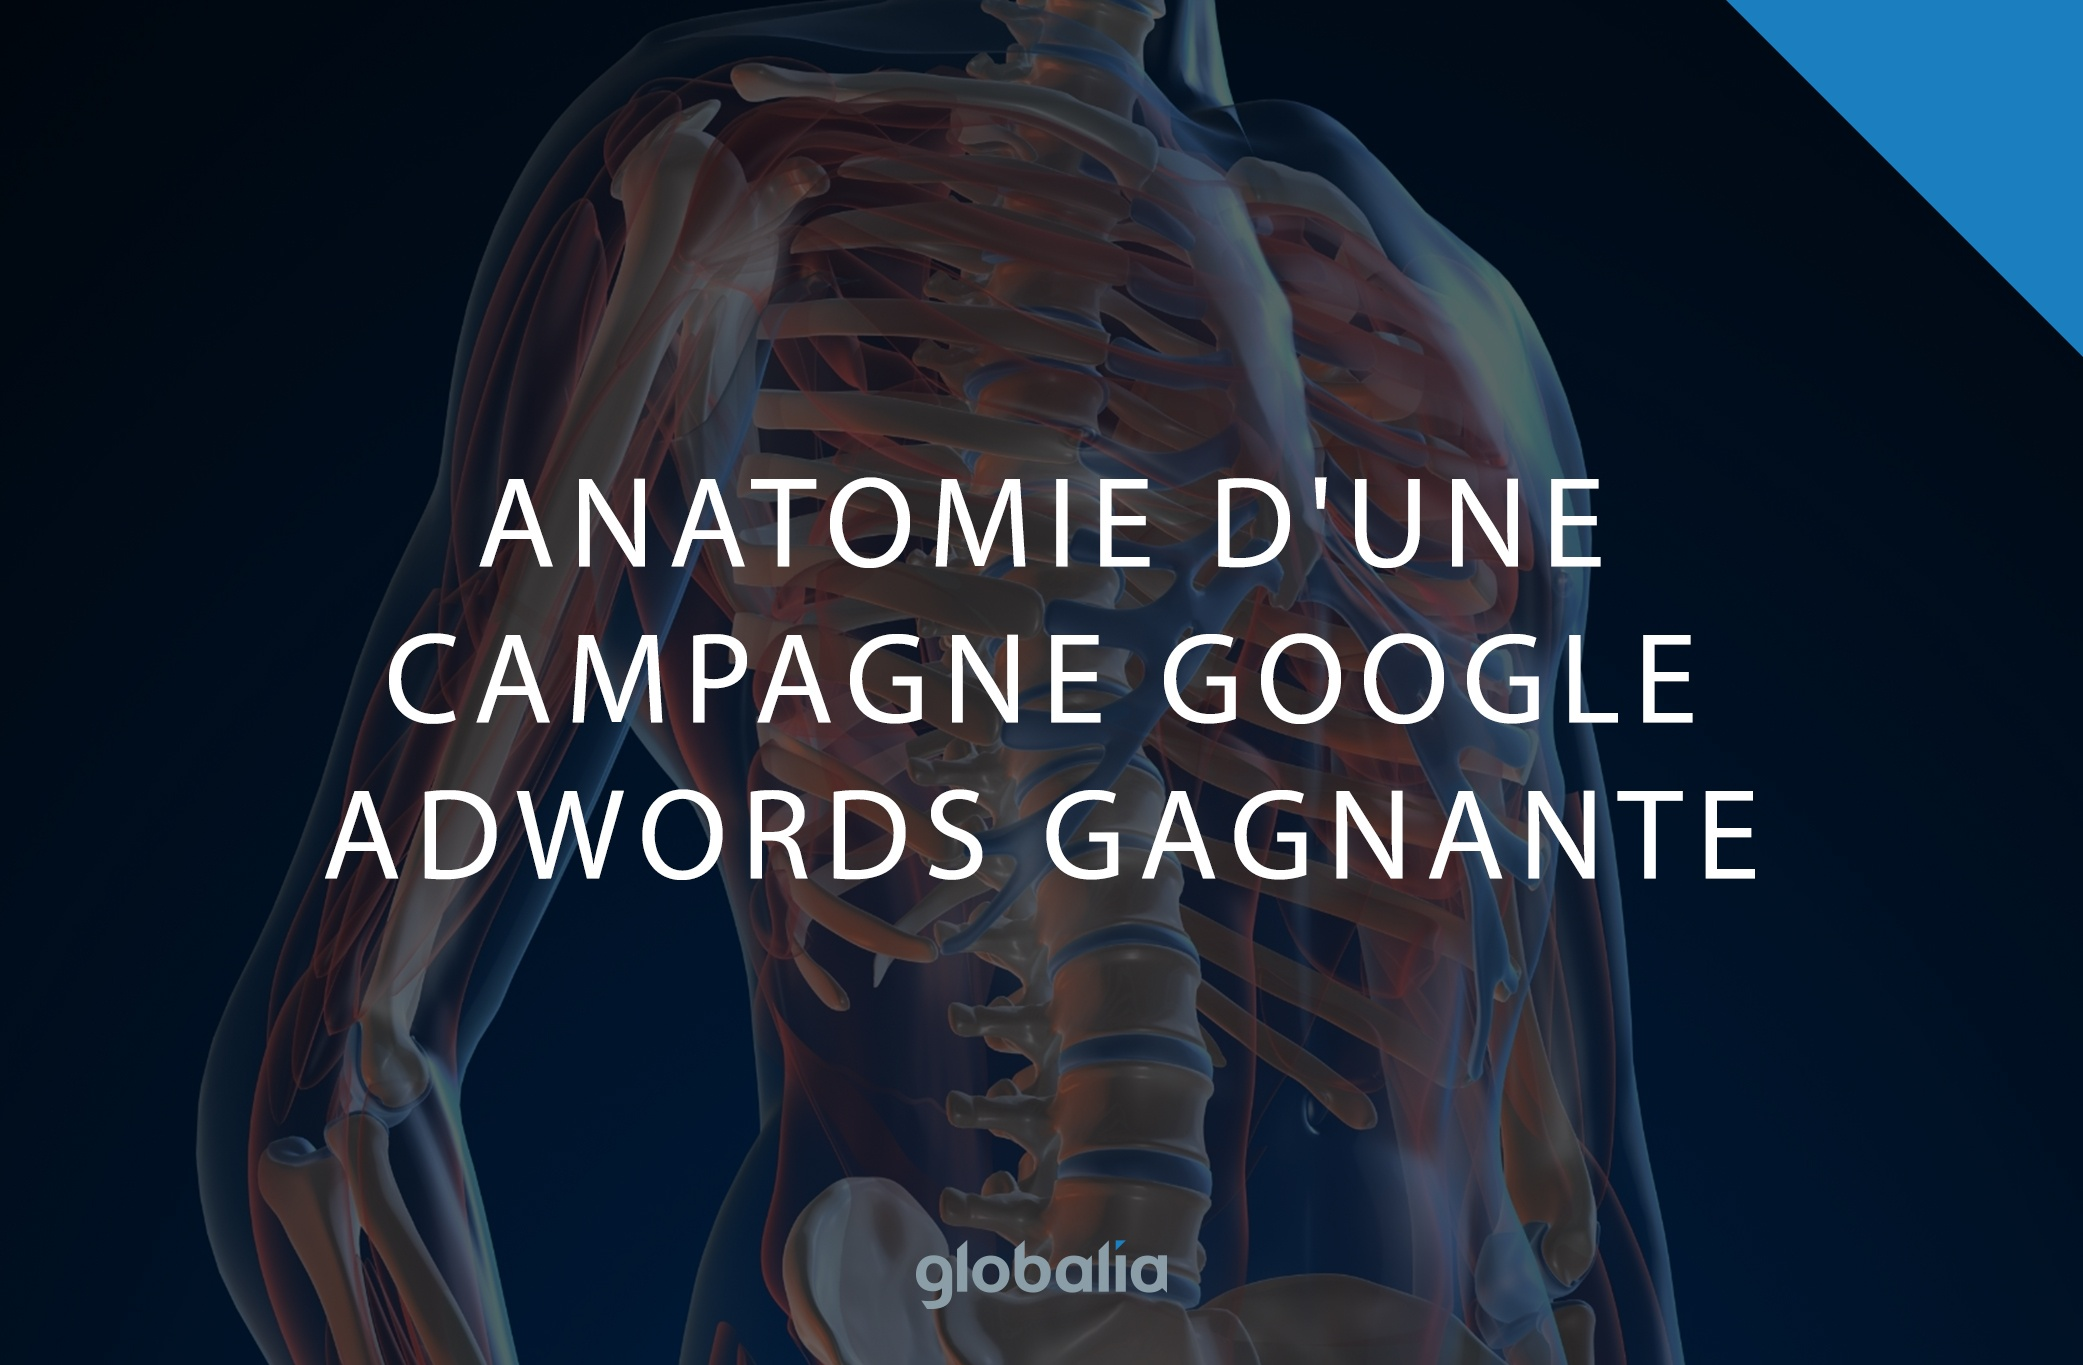 anatomie-adwords.jpg